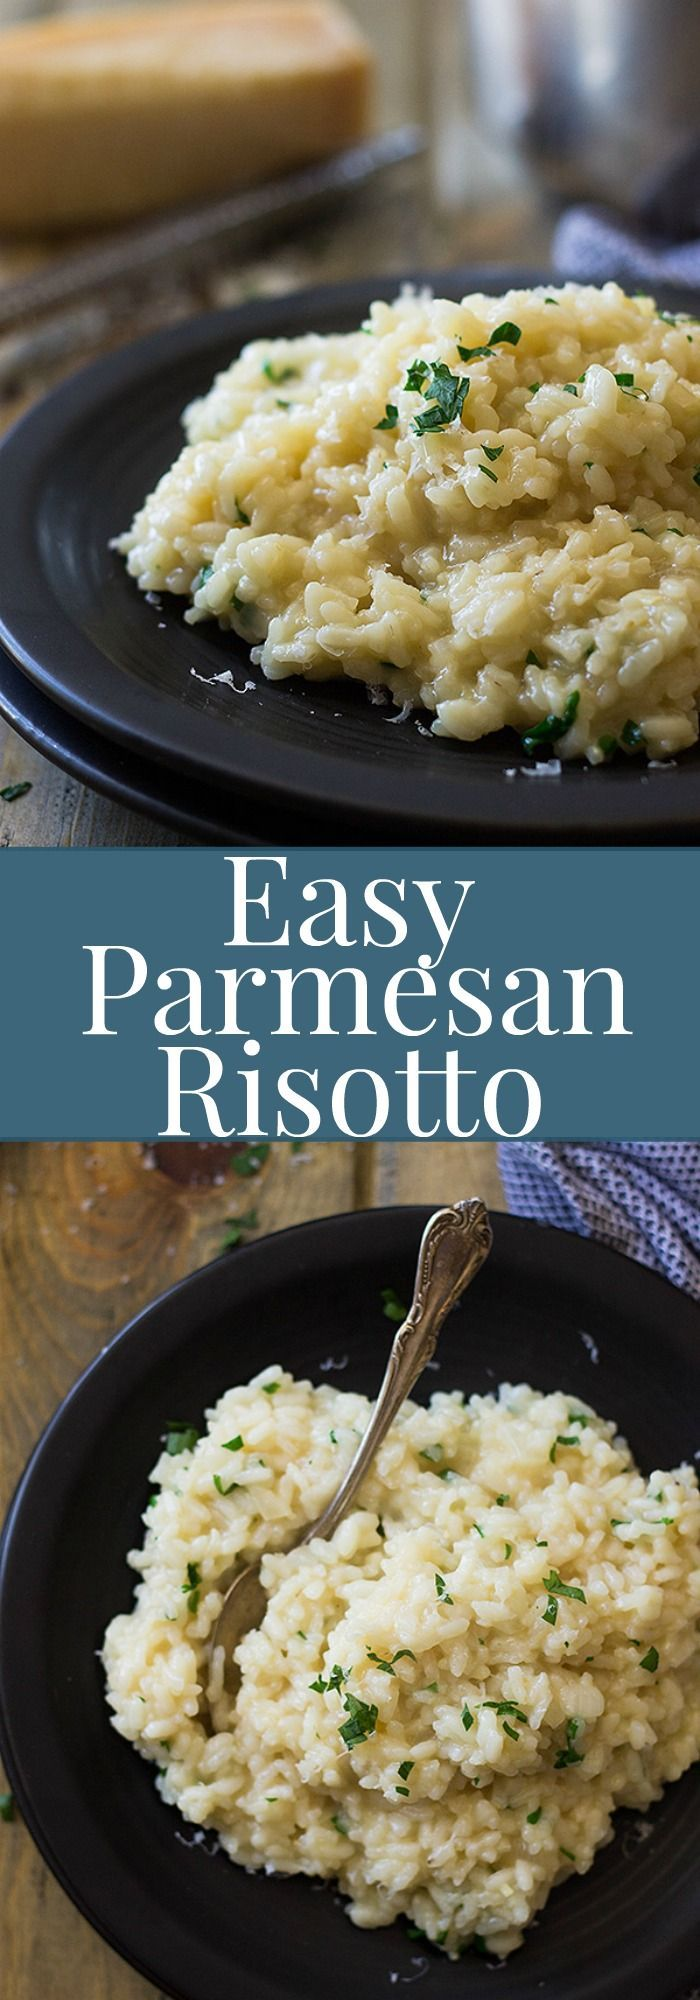 This Easy Parmesan Risotto has been simplified with the help from America's Test Kitchen. Less stirring, less work but creamy, dreamy risotto!!